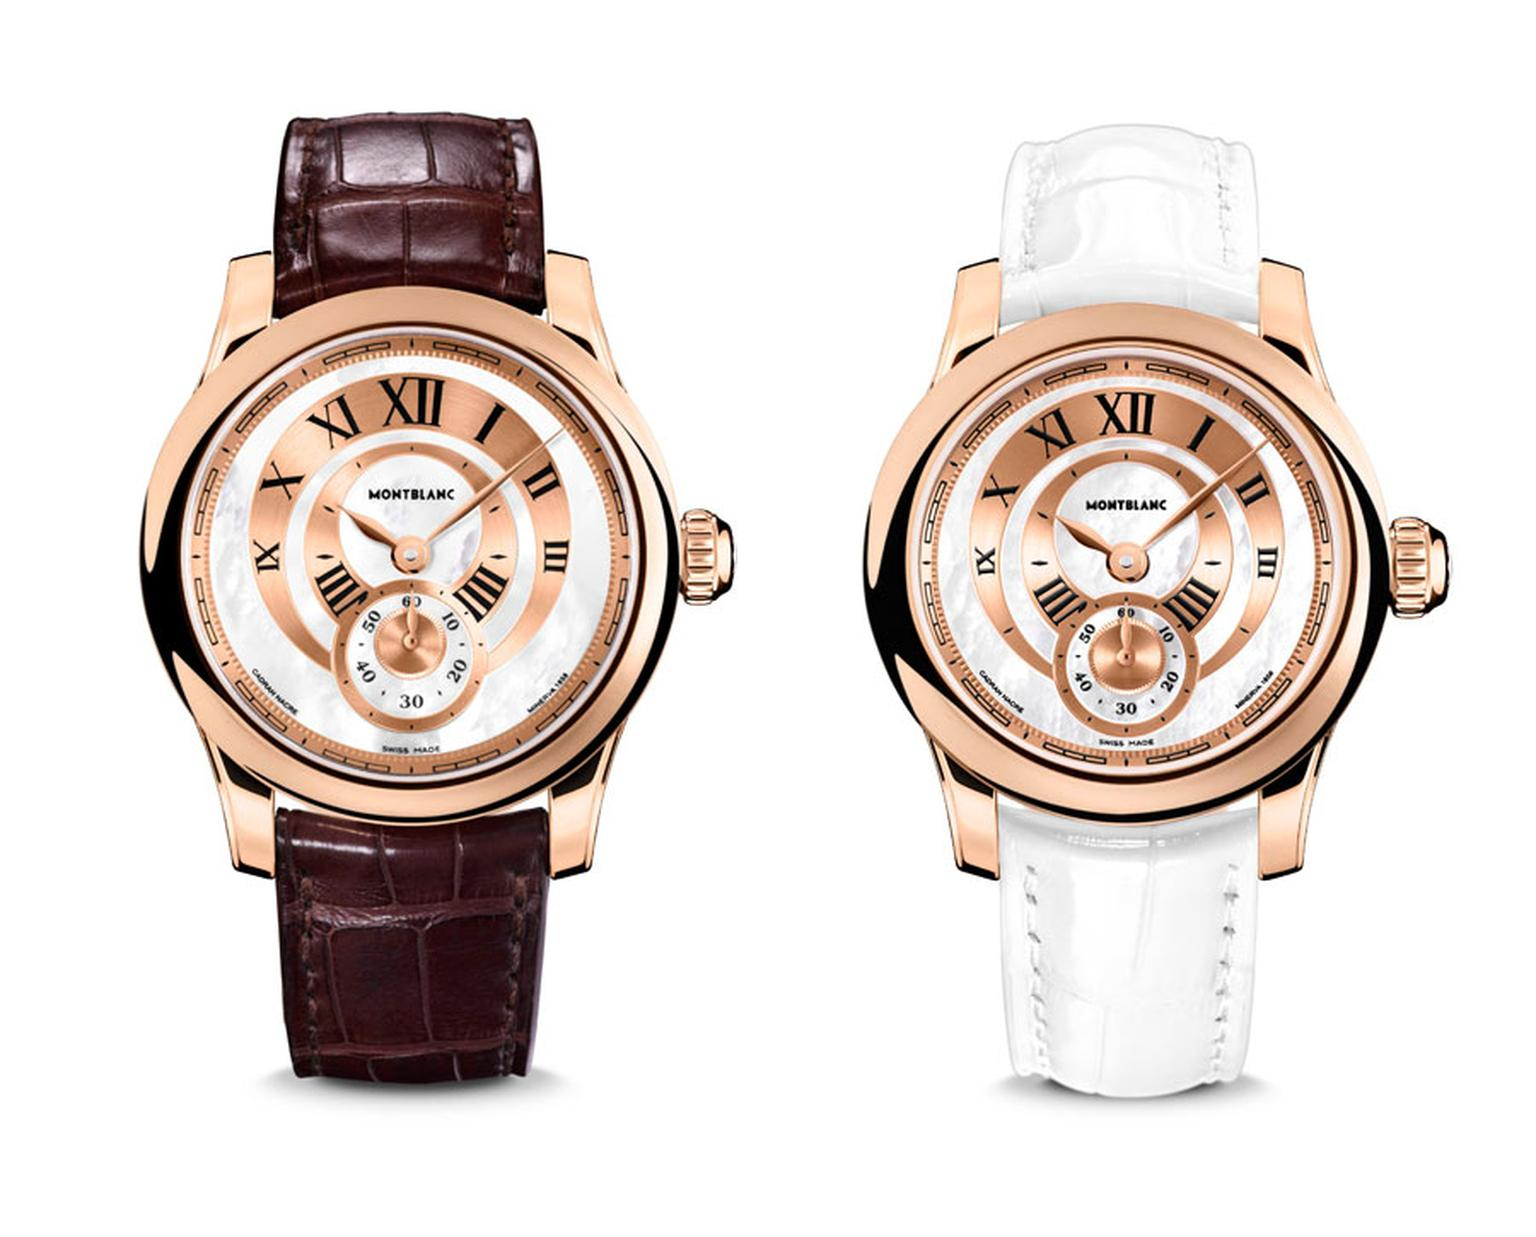 Montblanc-Villeret_Seconde-Authentique-pair-front-shot-_Low.jpg